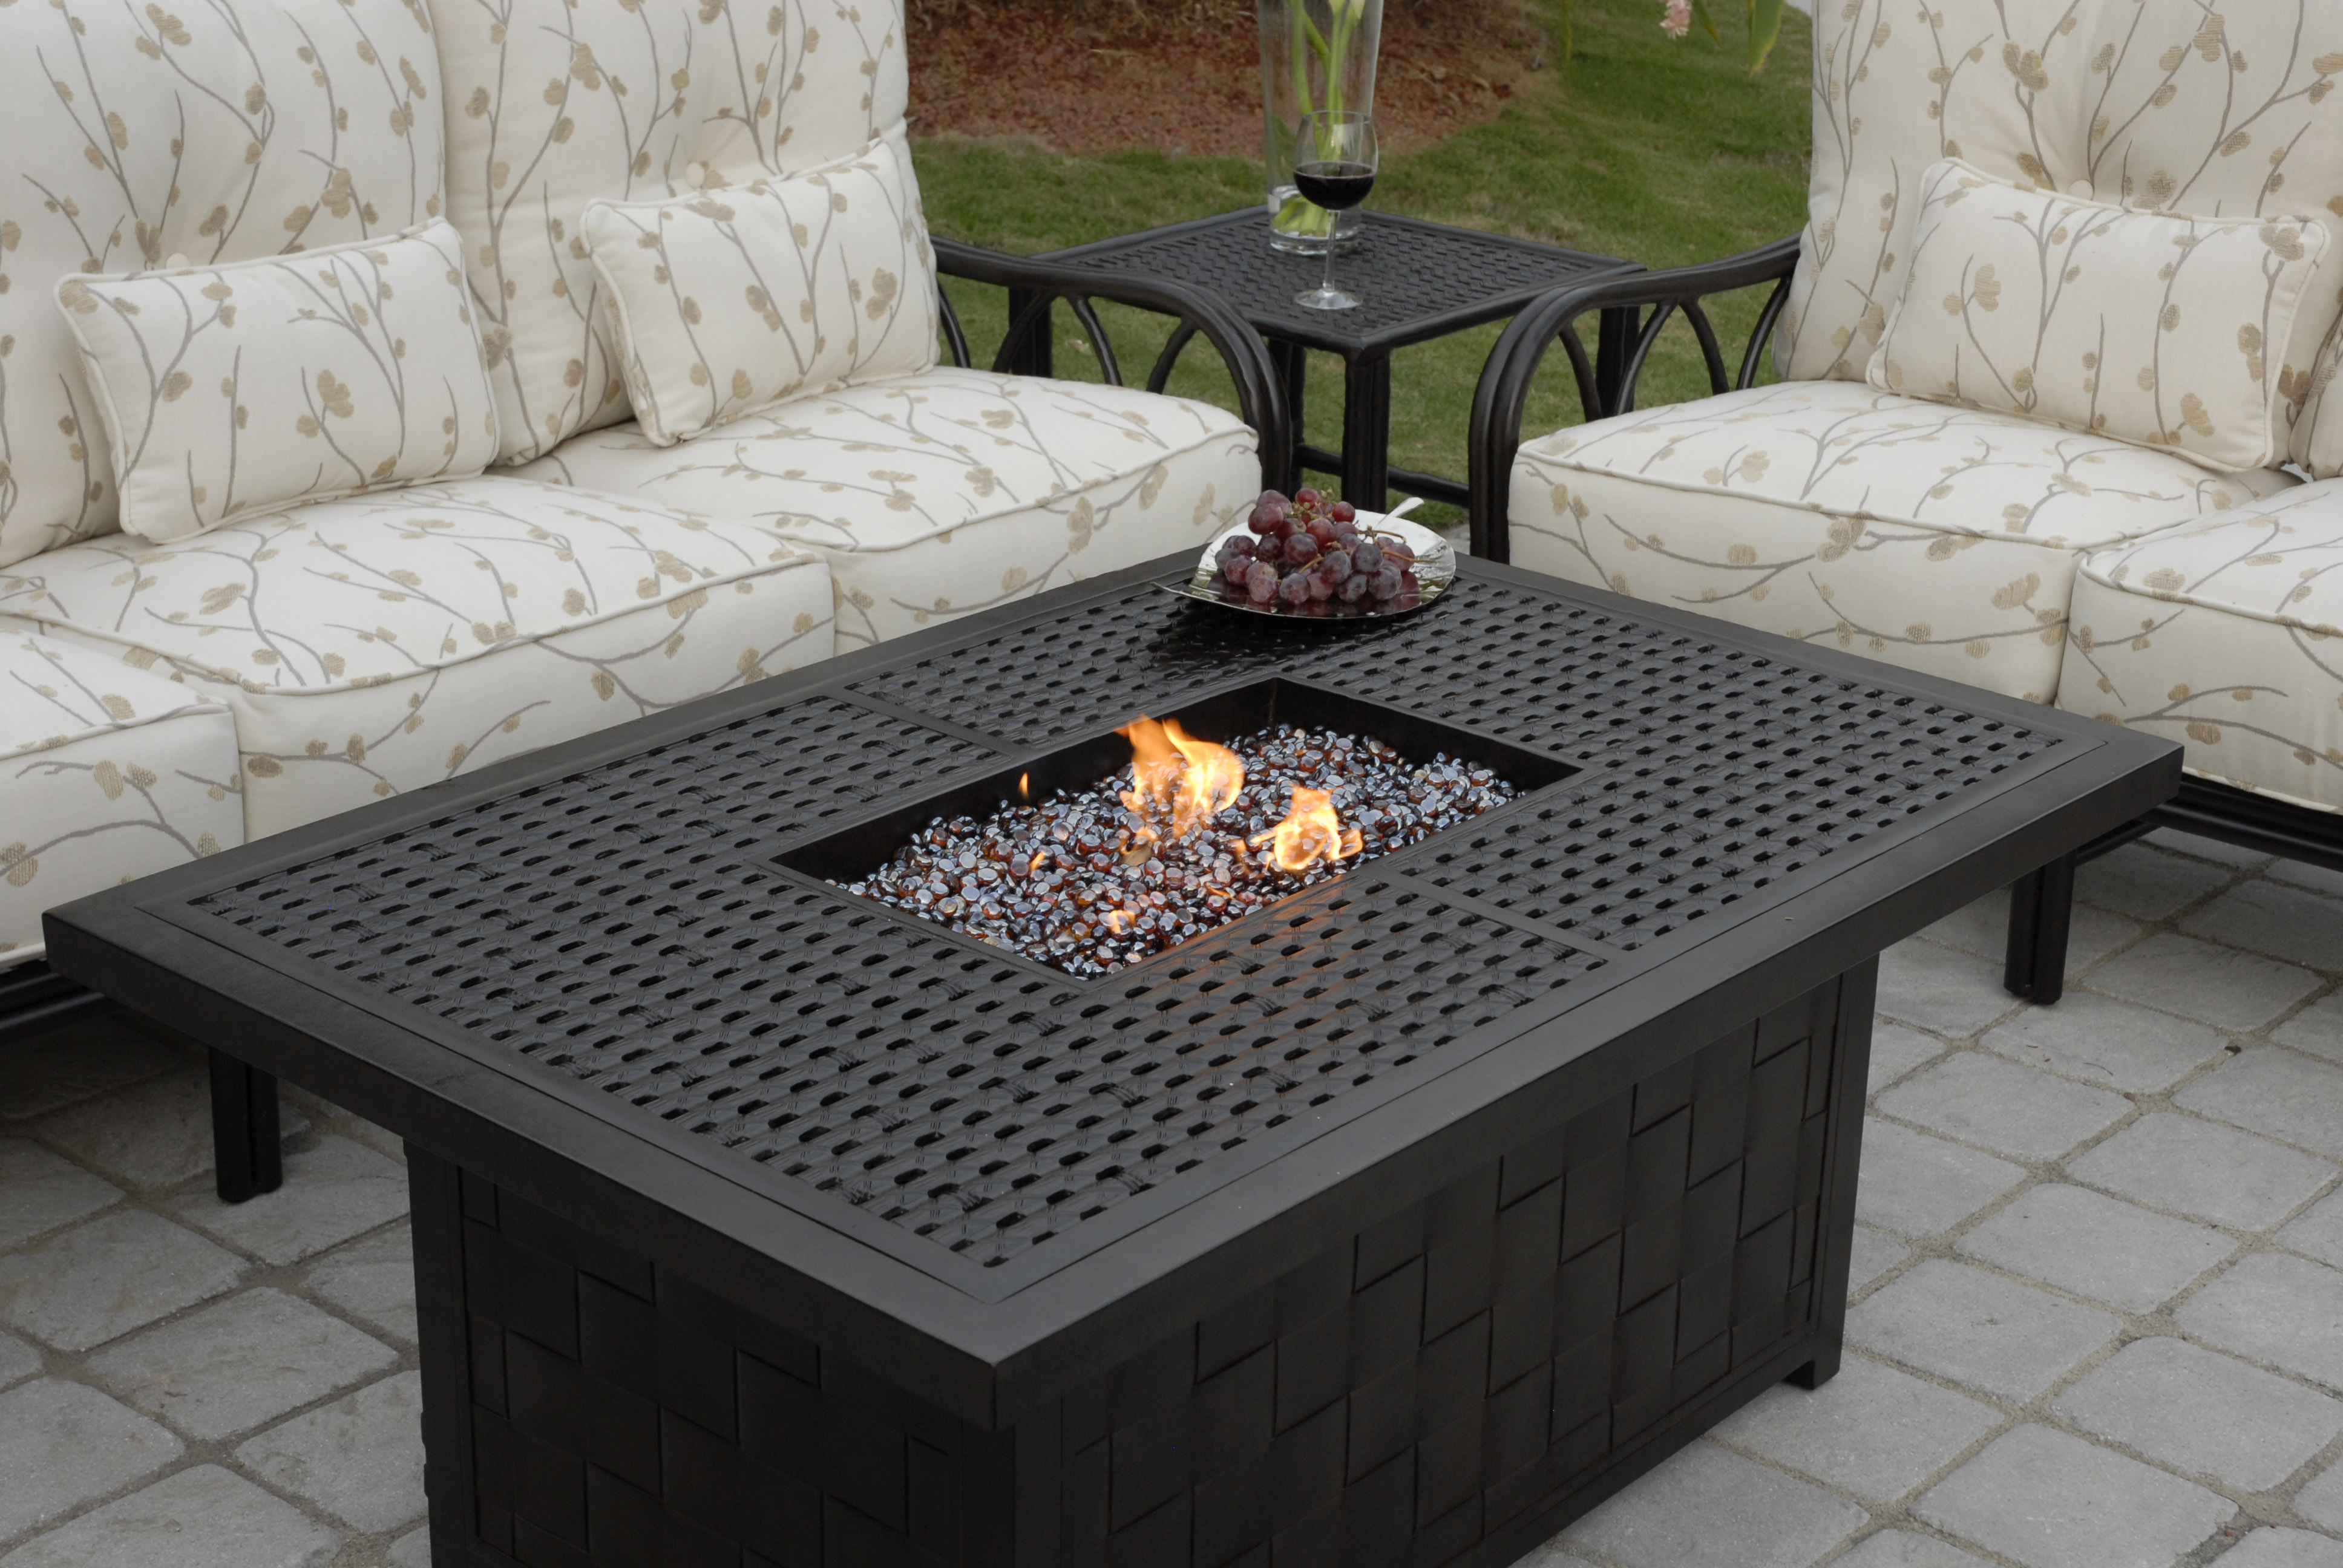 Costco Patio Furniture Clearance Rectangular Fire Pit from Pride Family Brands